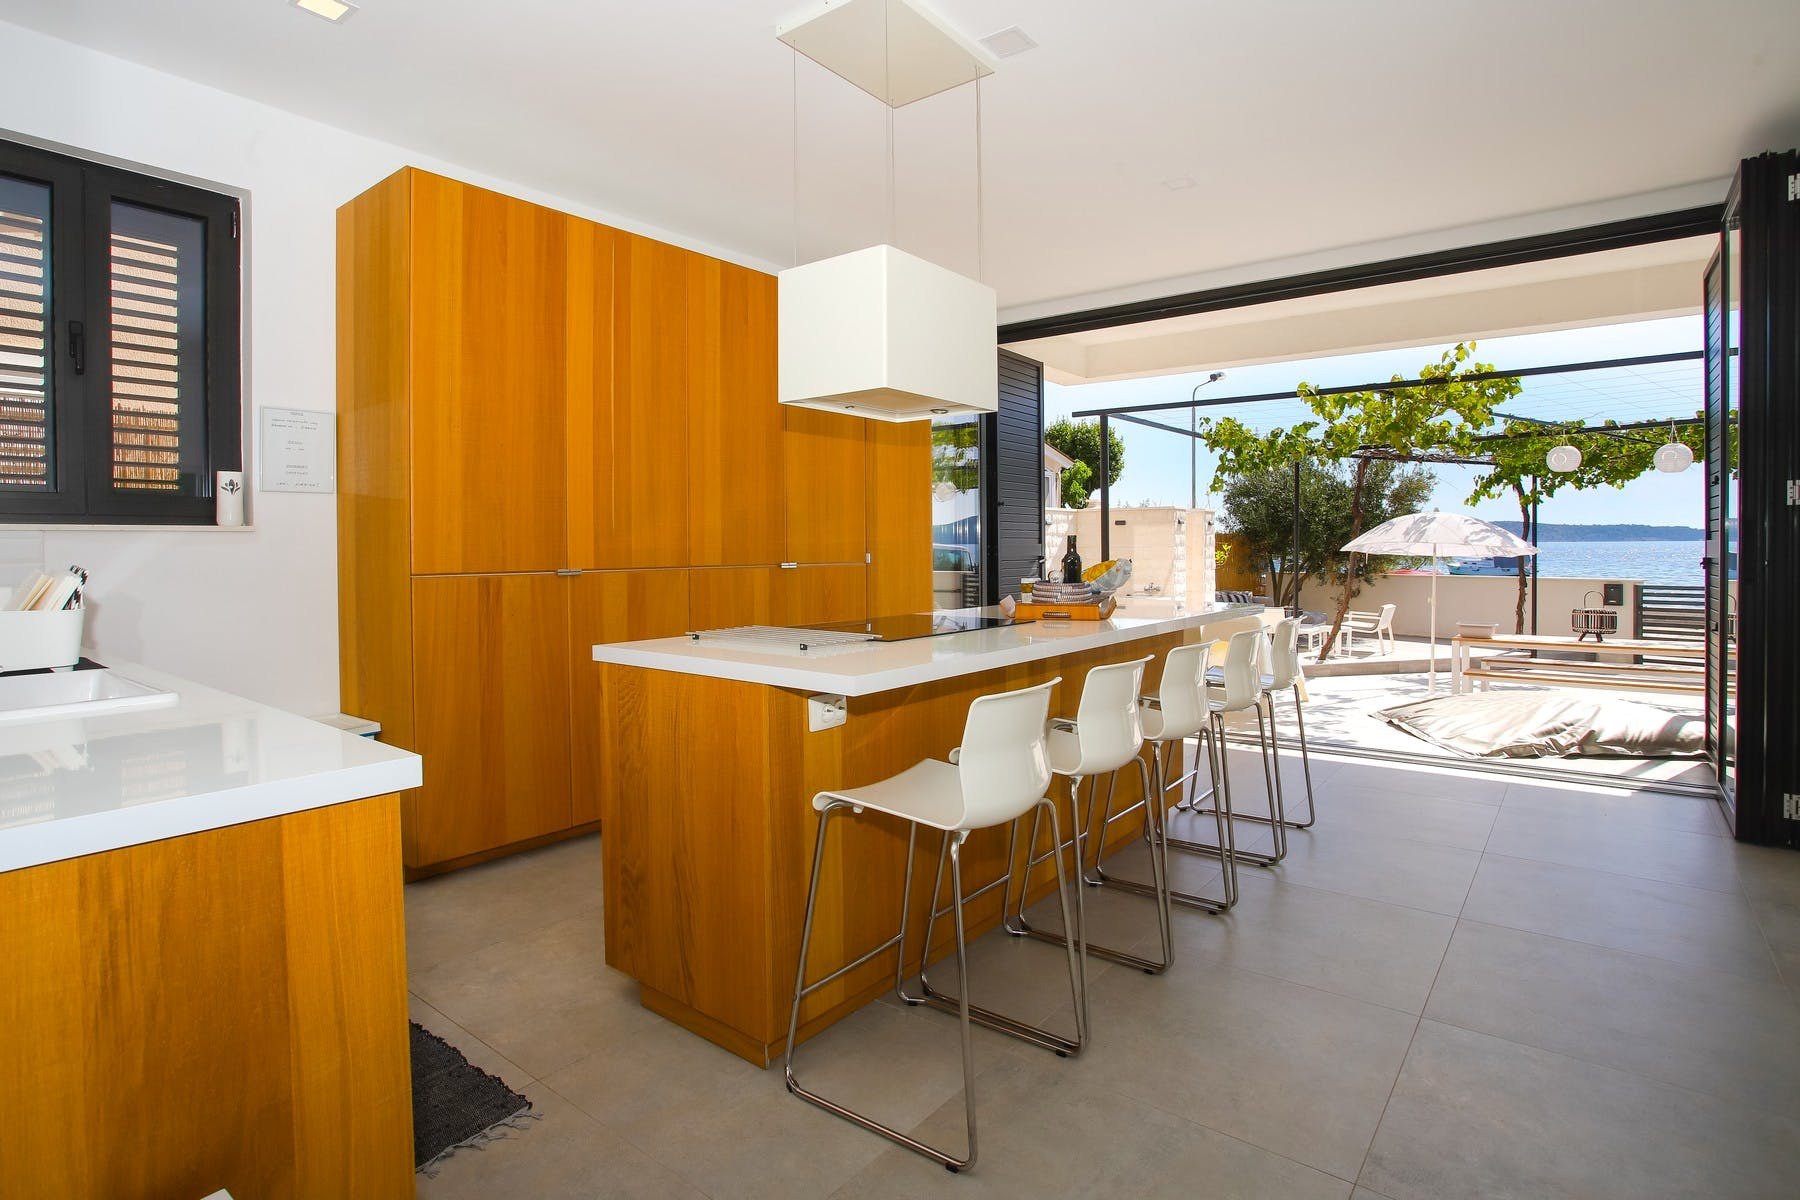 Open space kitchen with dining area